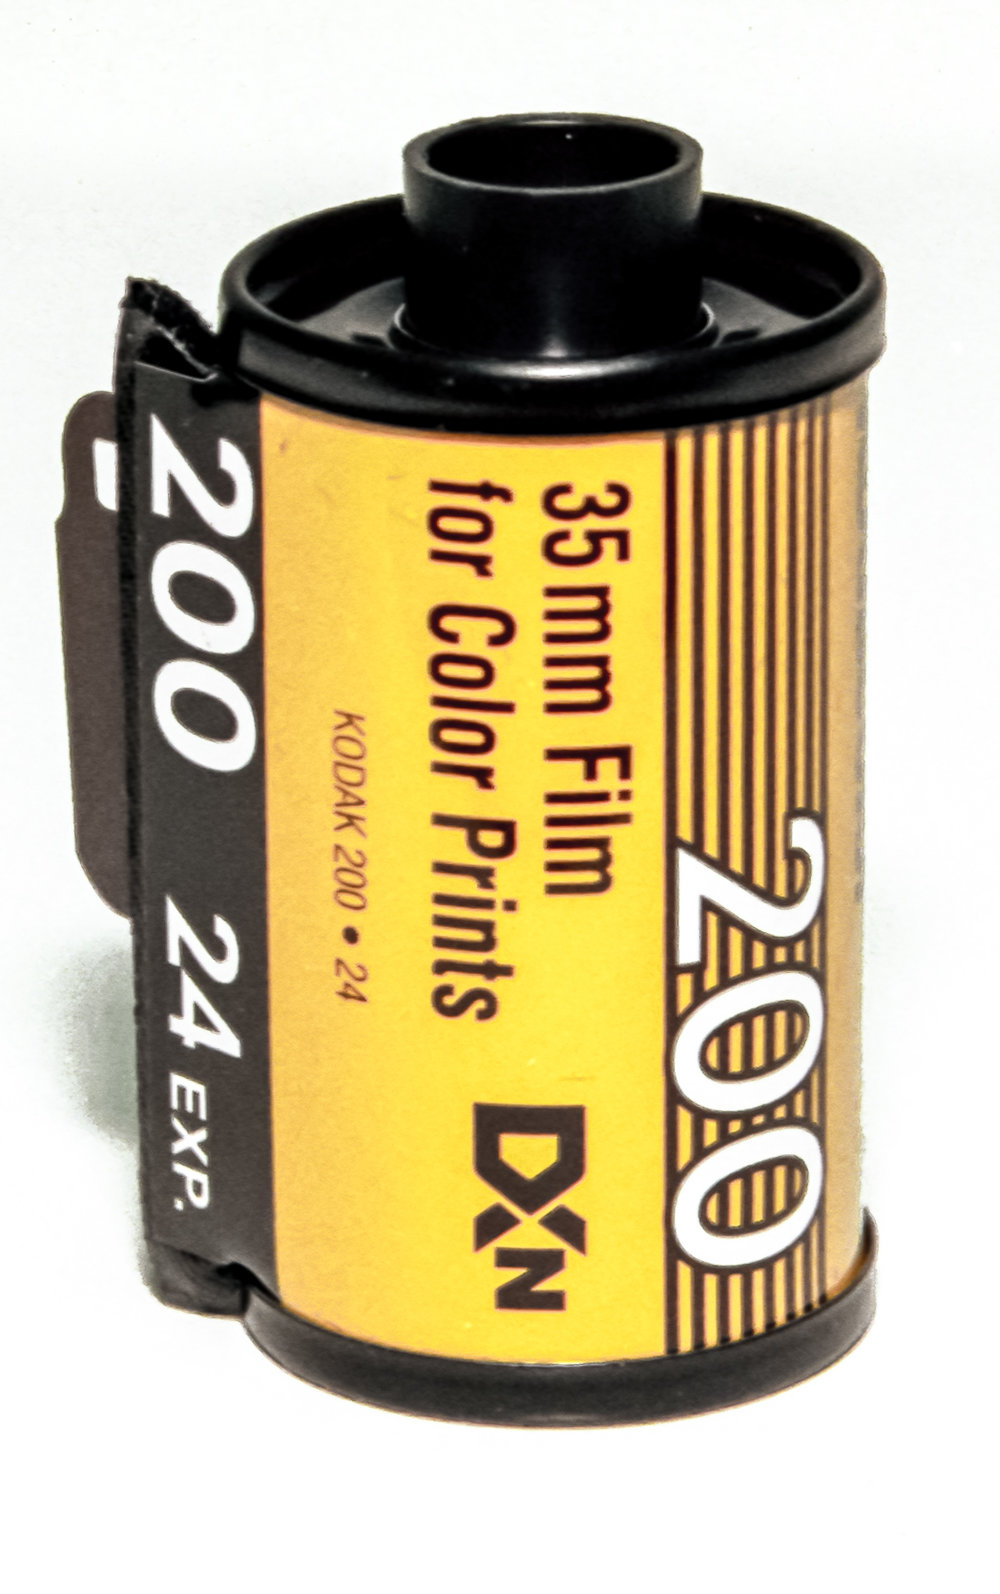 Kodak ColorPlus 200 Film -